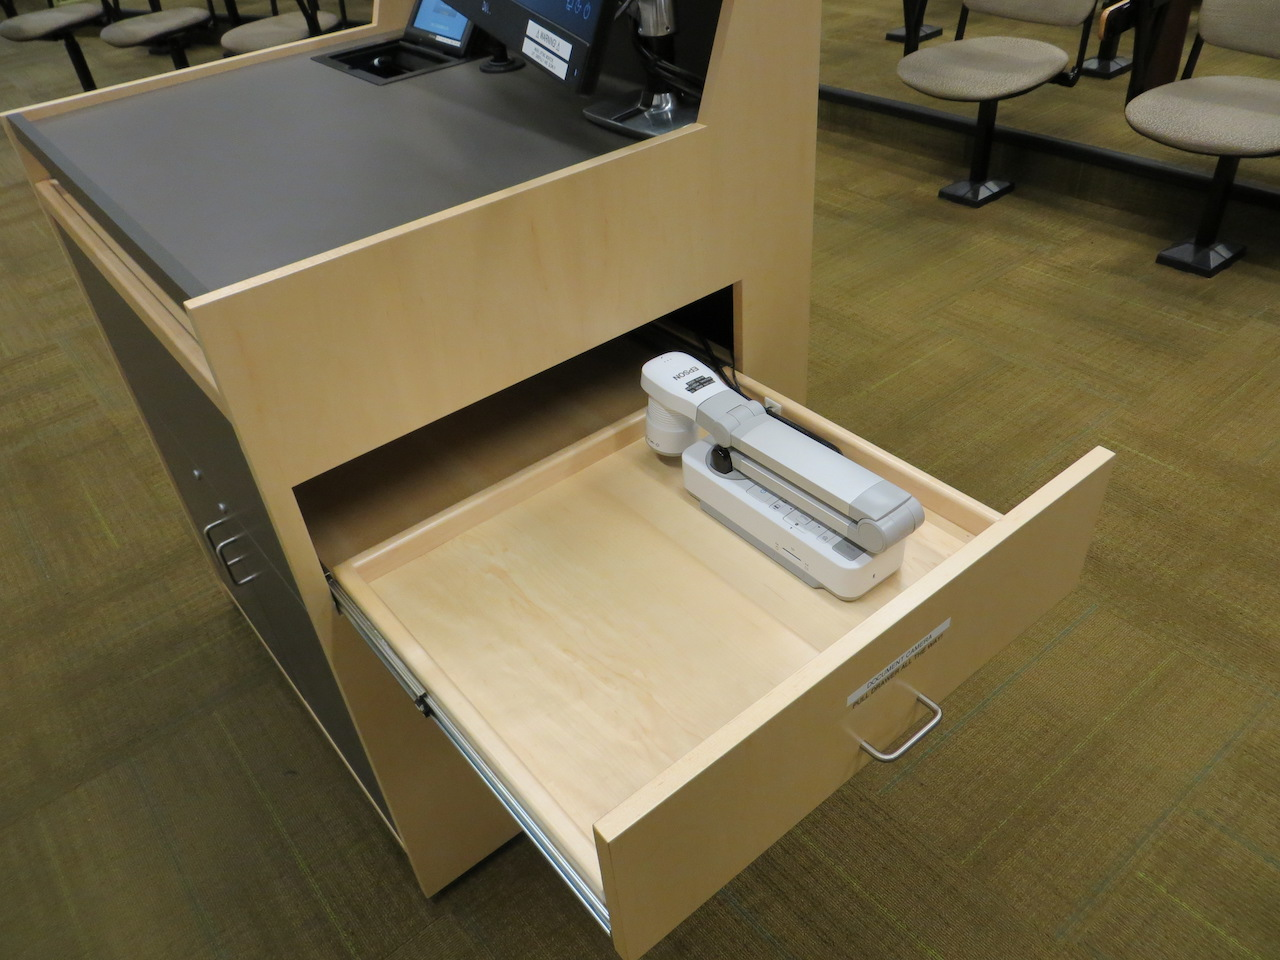 Podium with document camera shelf extended